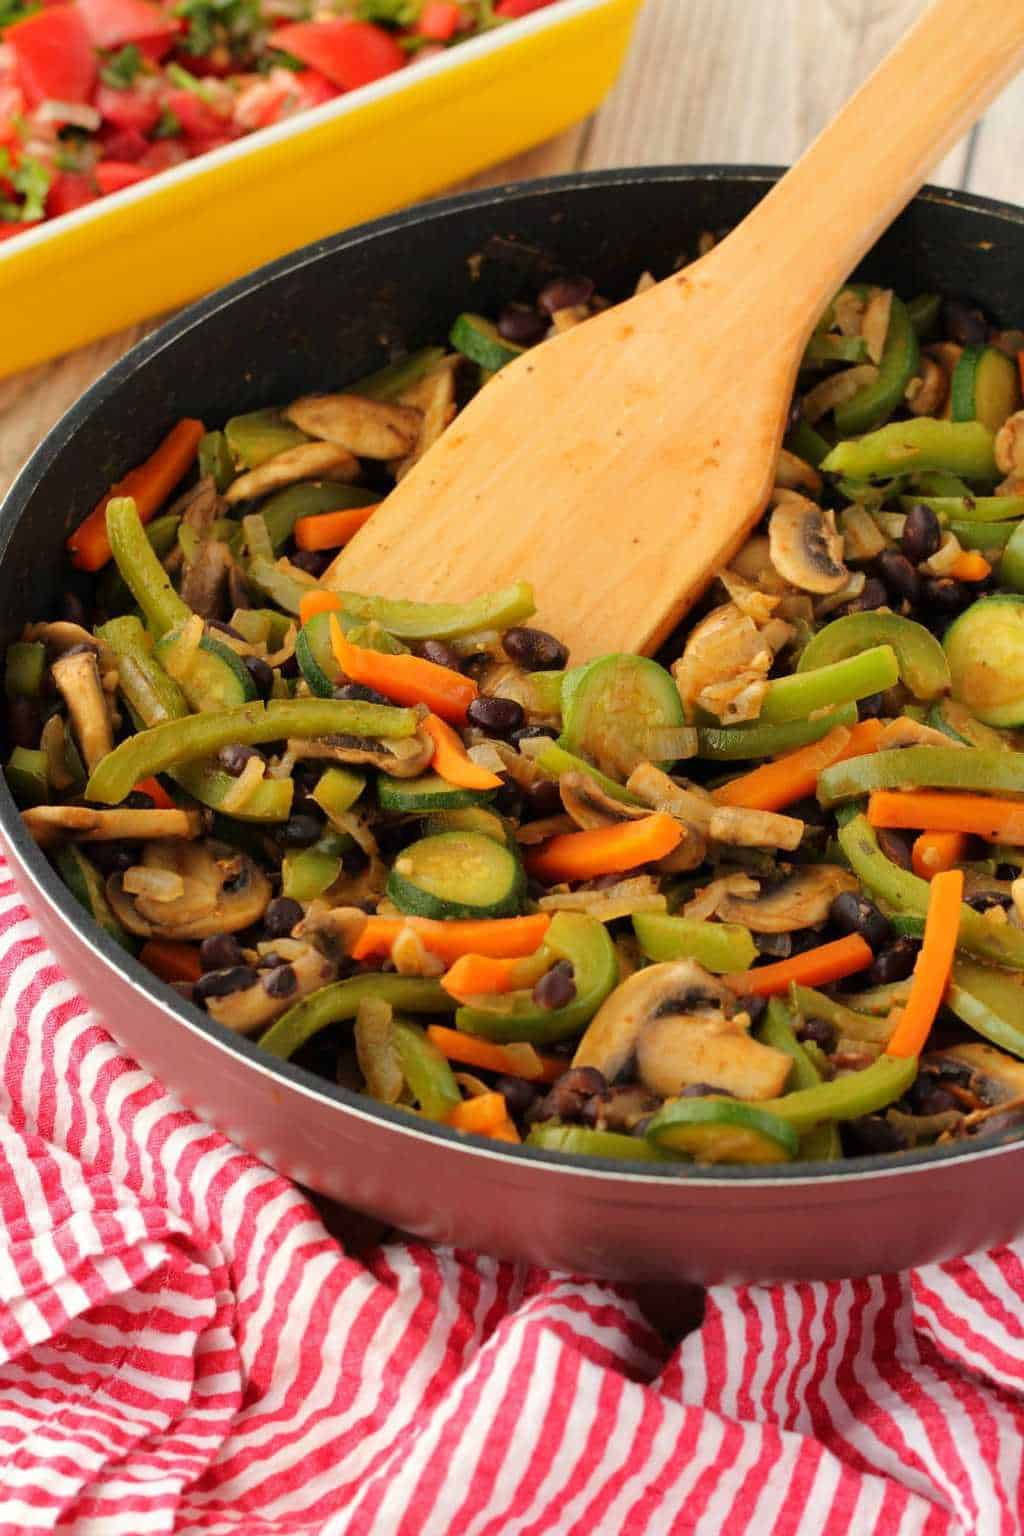 A pan of sautéed veggies for veggie fajitas.